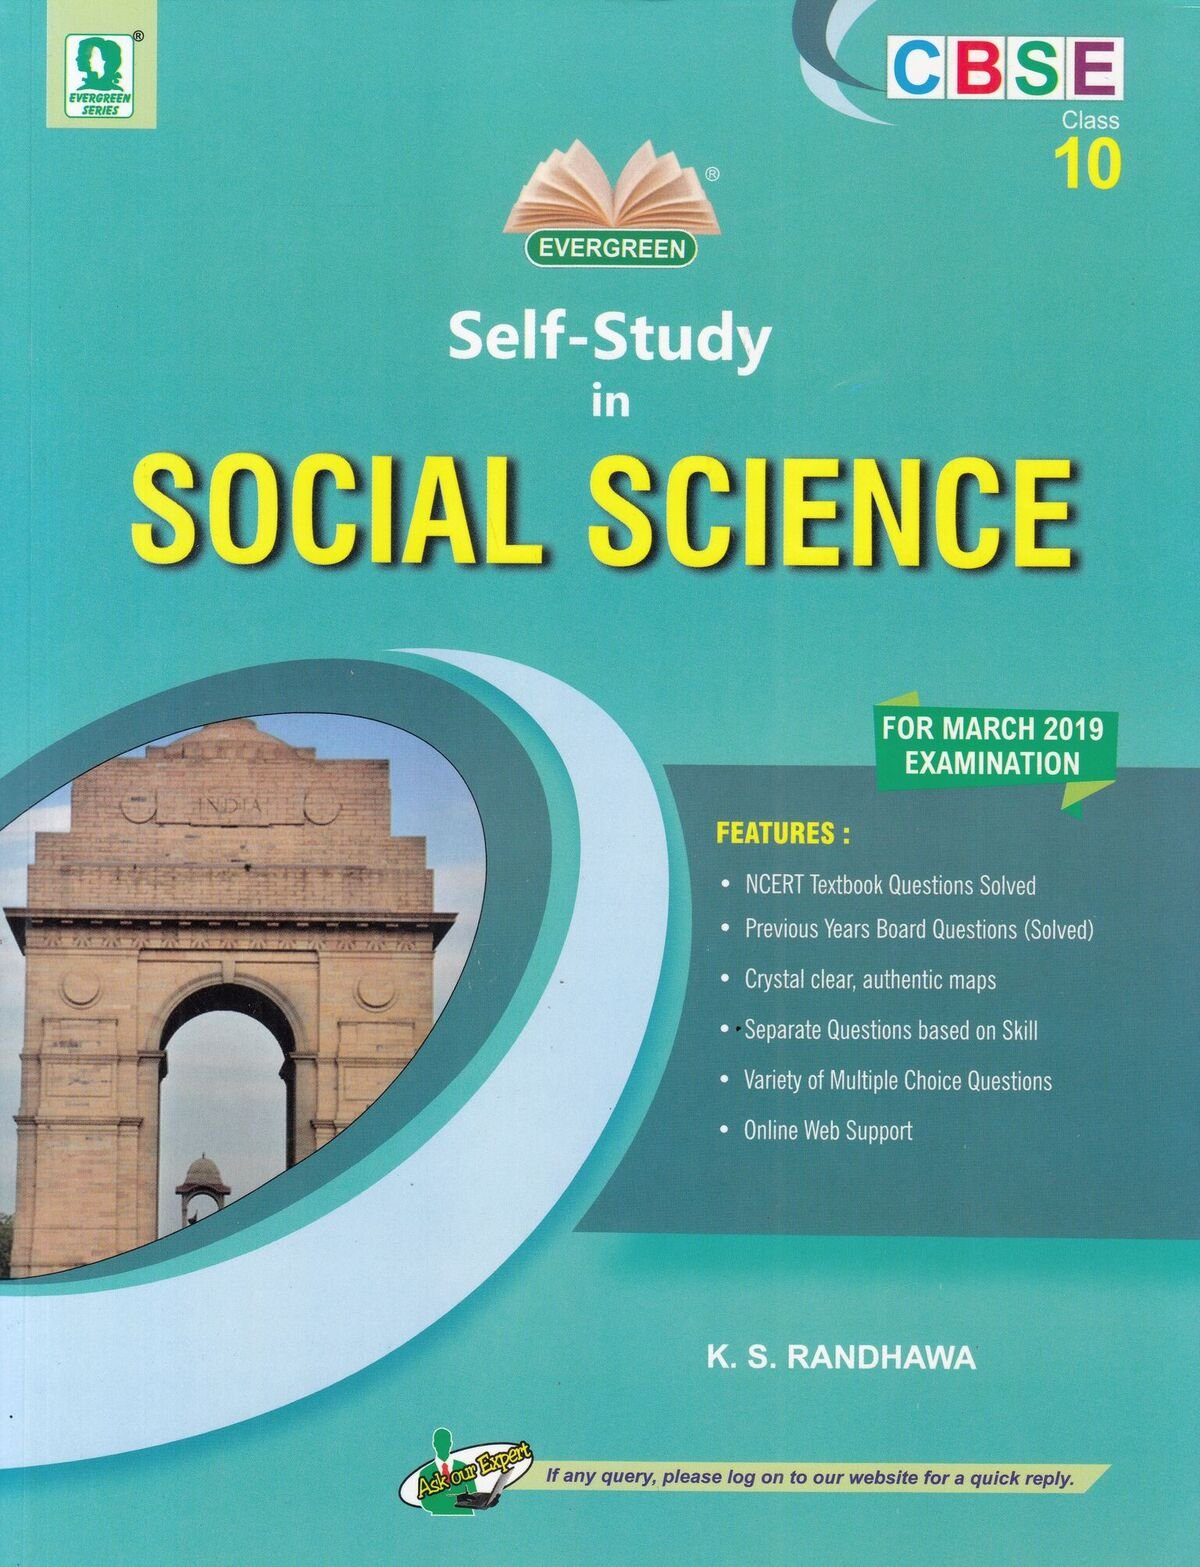 CBSE Self Study In Social Science: For Class 10 2018-2019 Session:  Amazon.in: K.S. Randhawa: Books